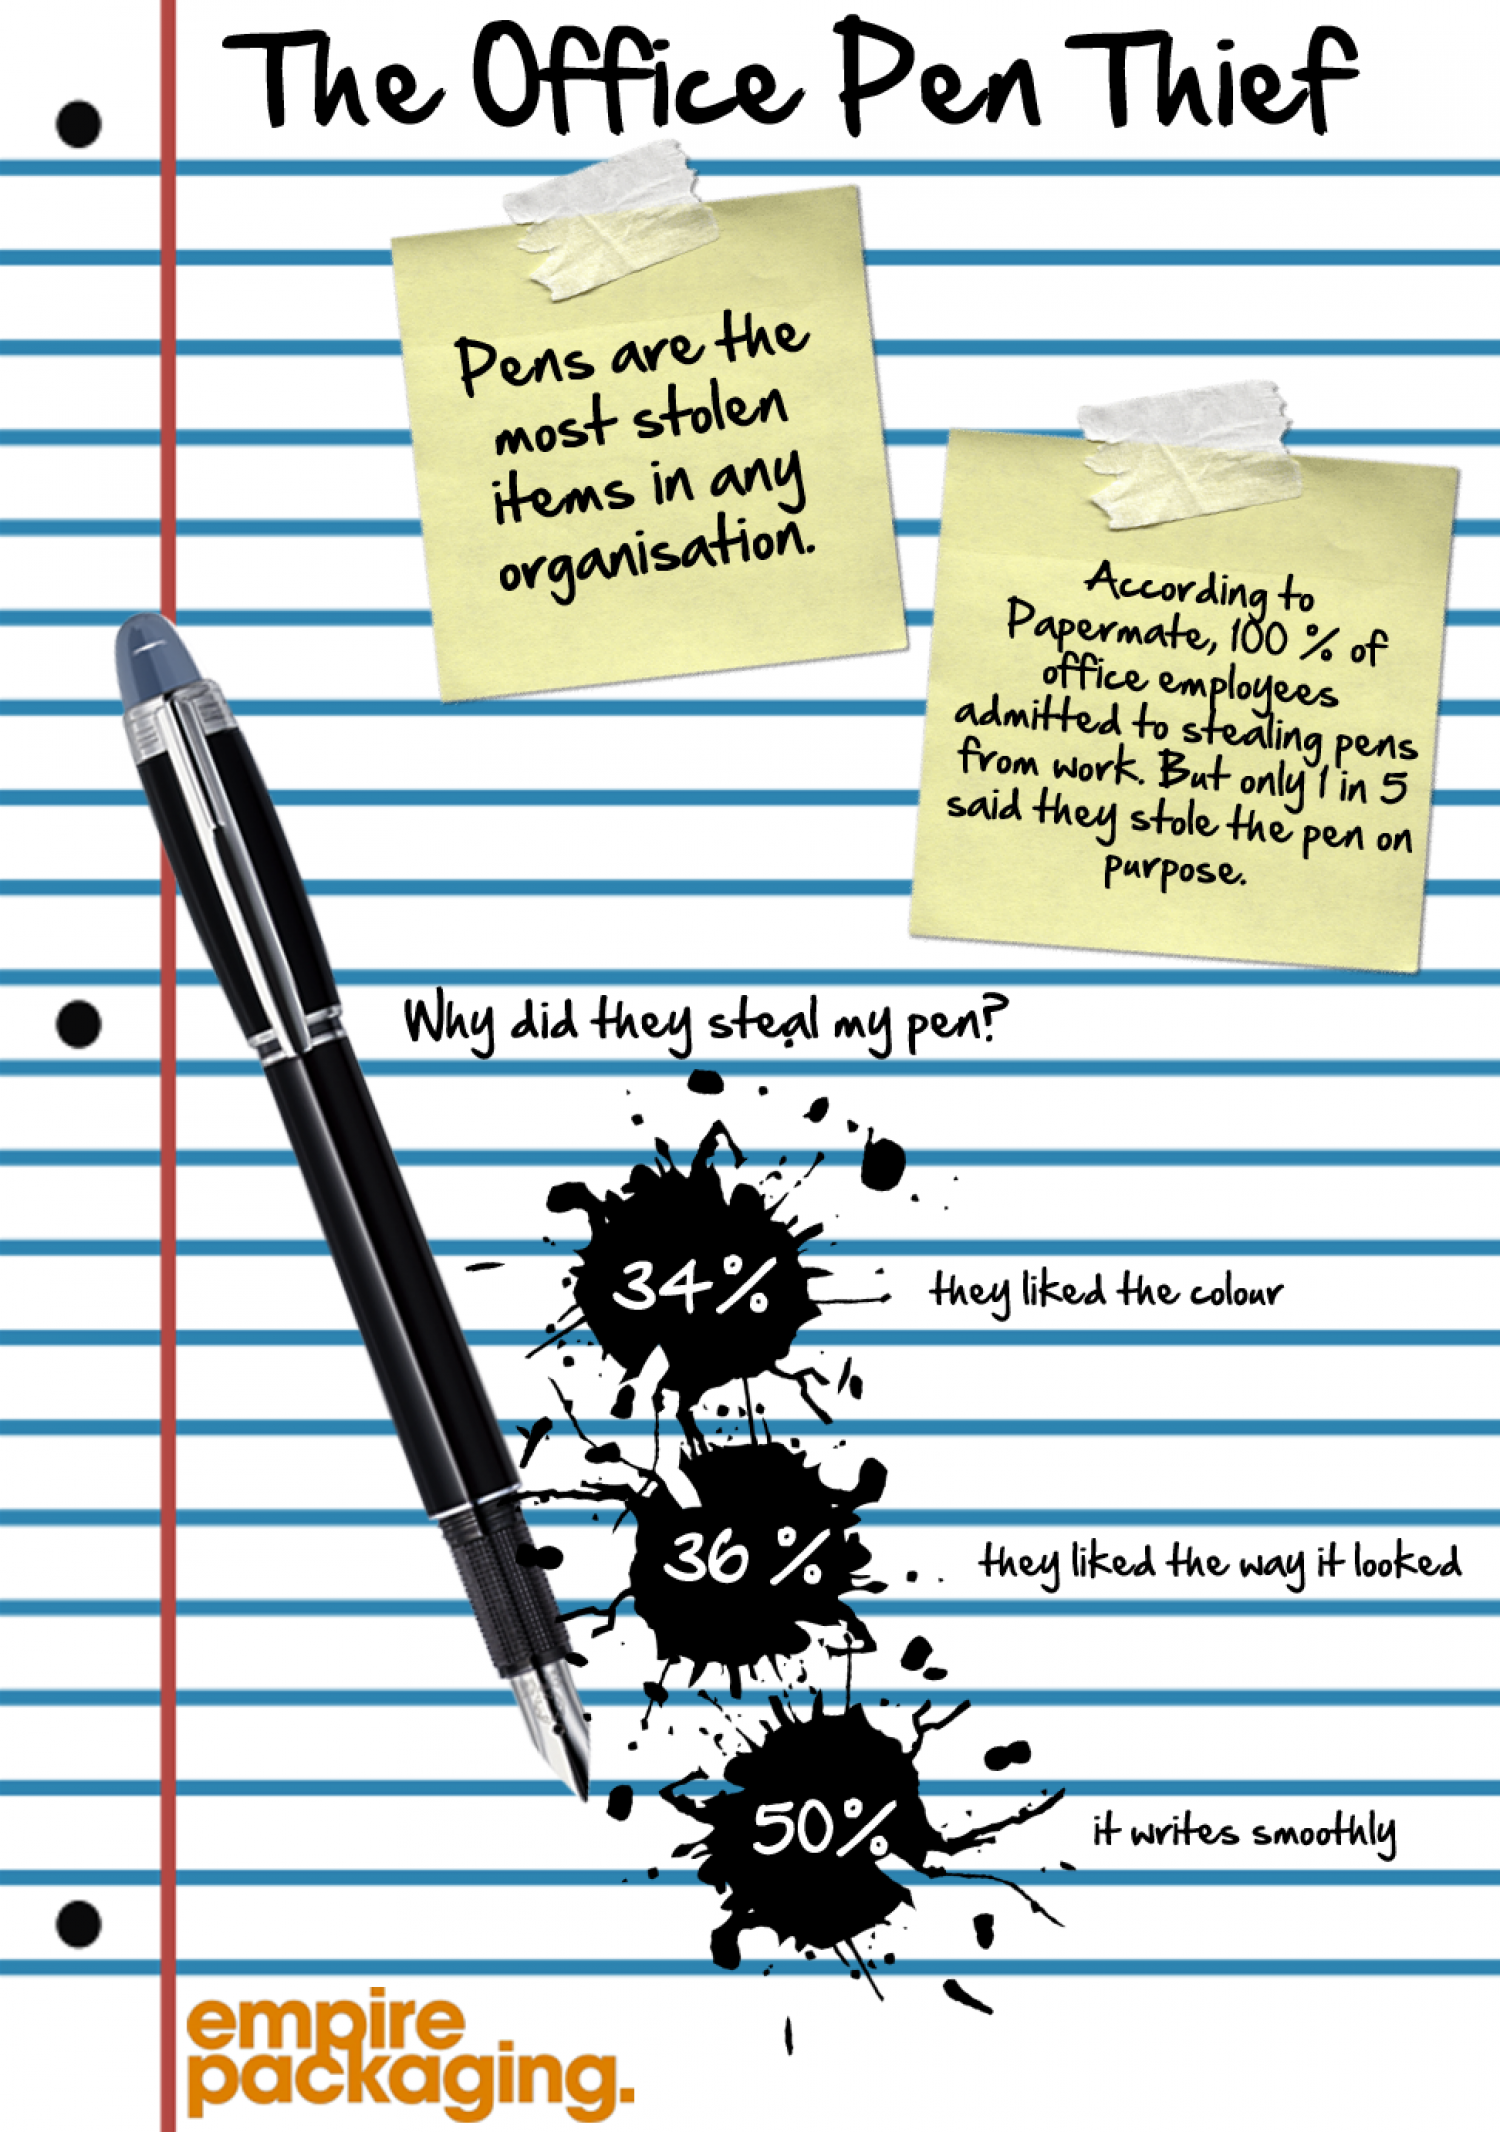 The office pen thief Infographic